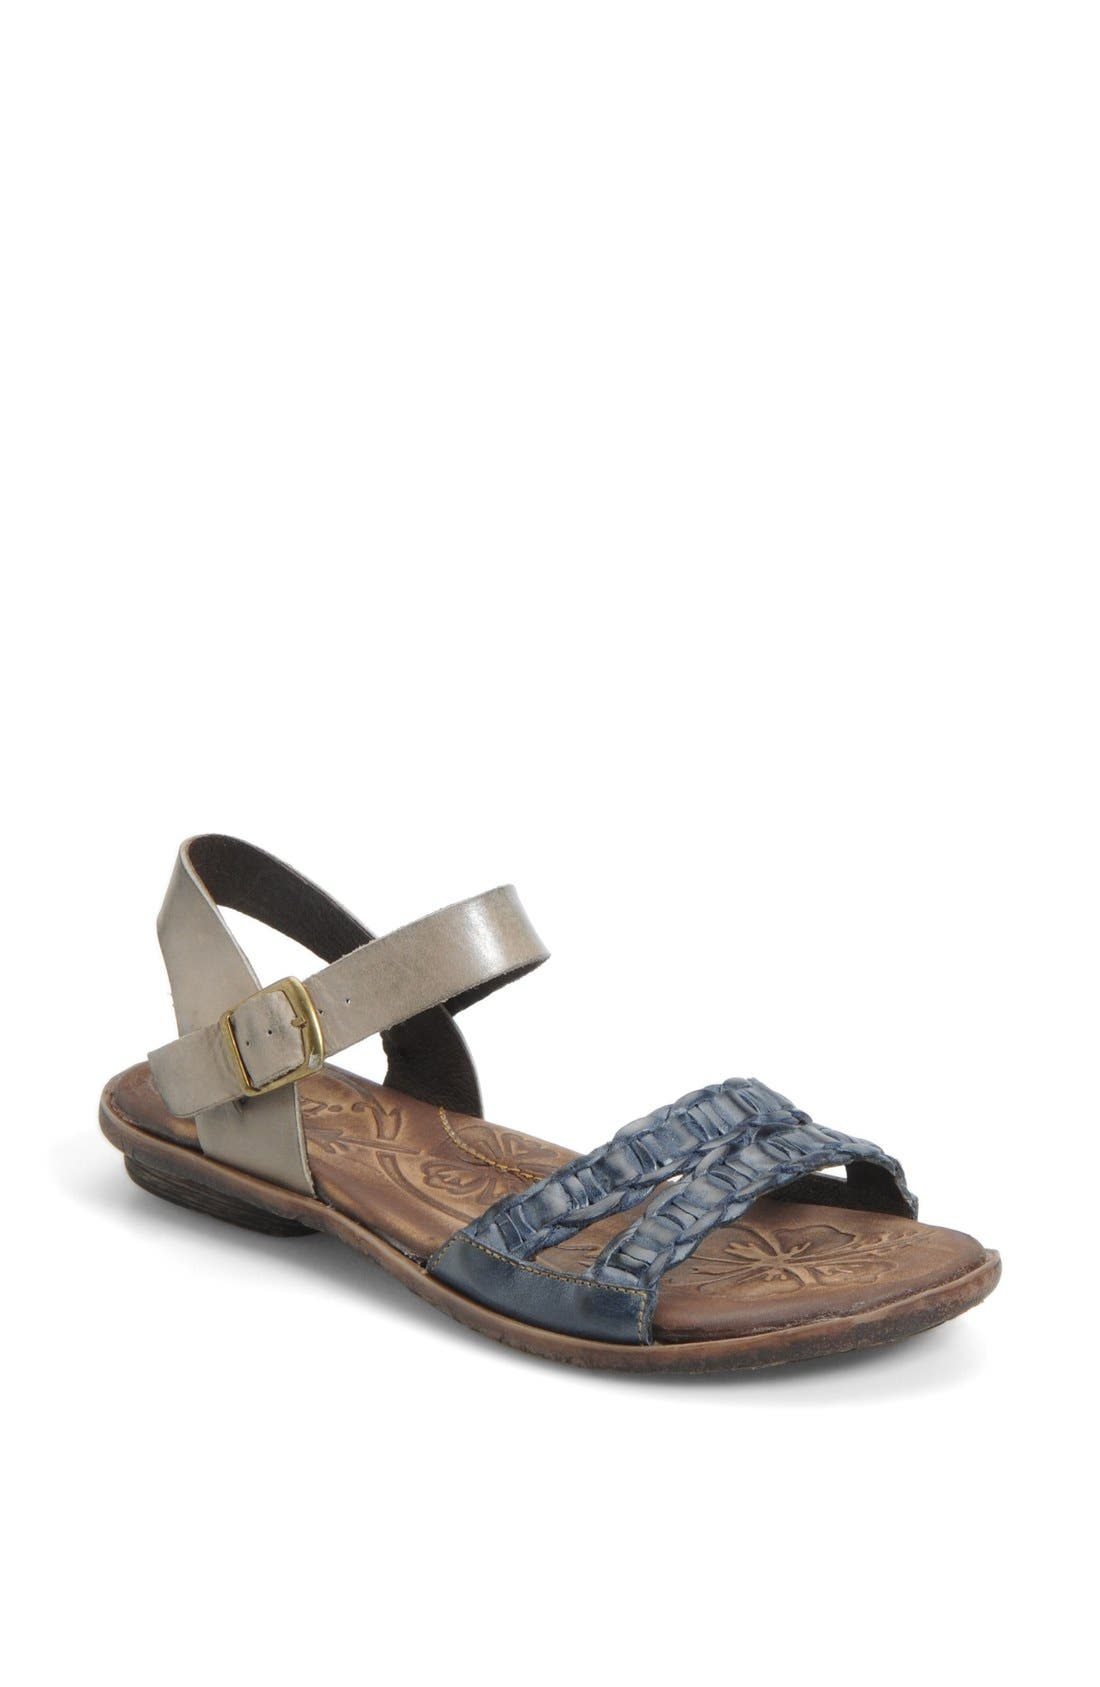 Alternate Image 1 Selected - Børn 'Tulum' Sandal